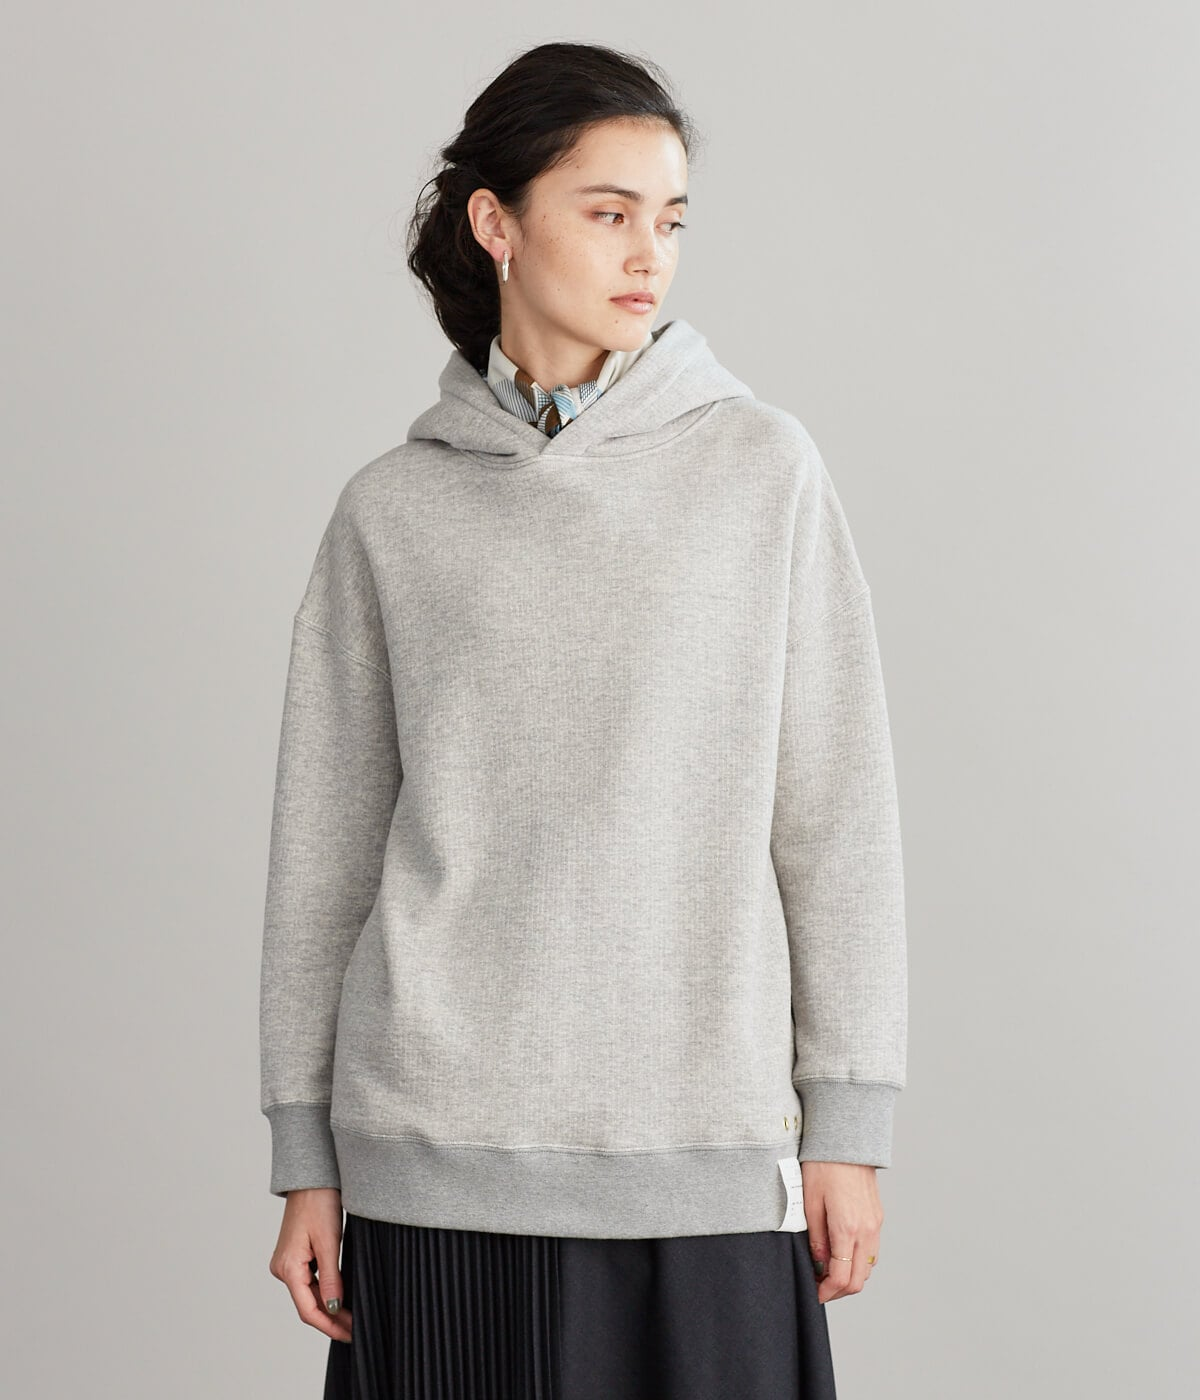 Botanical Cotton TSURI URAKE ビッグパーカ